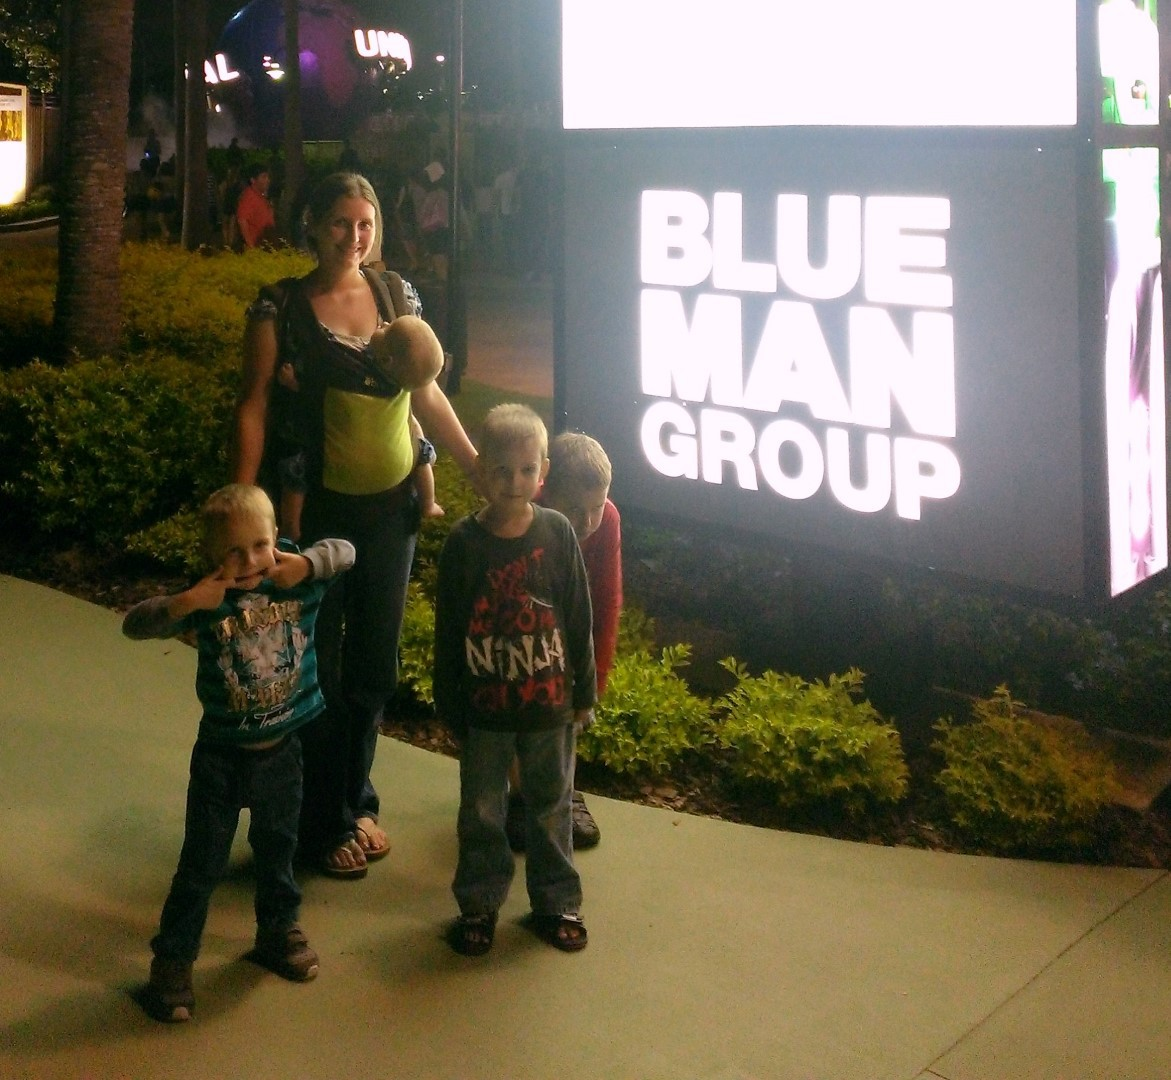 After Blue Man Group